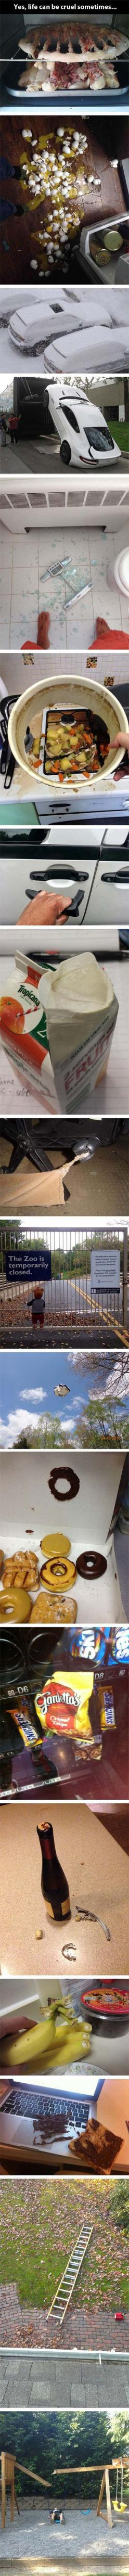 If you thought YOU were having a hard day... That last picture. I'm dying. | See more about wine bottles, the zoo and zoos.: Giggle, The Zoo, My Life, Thought, Funny Stuff, Bad Day